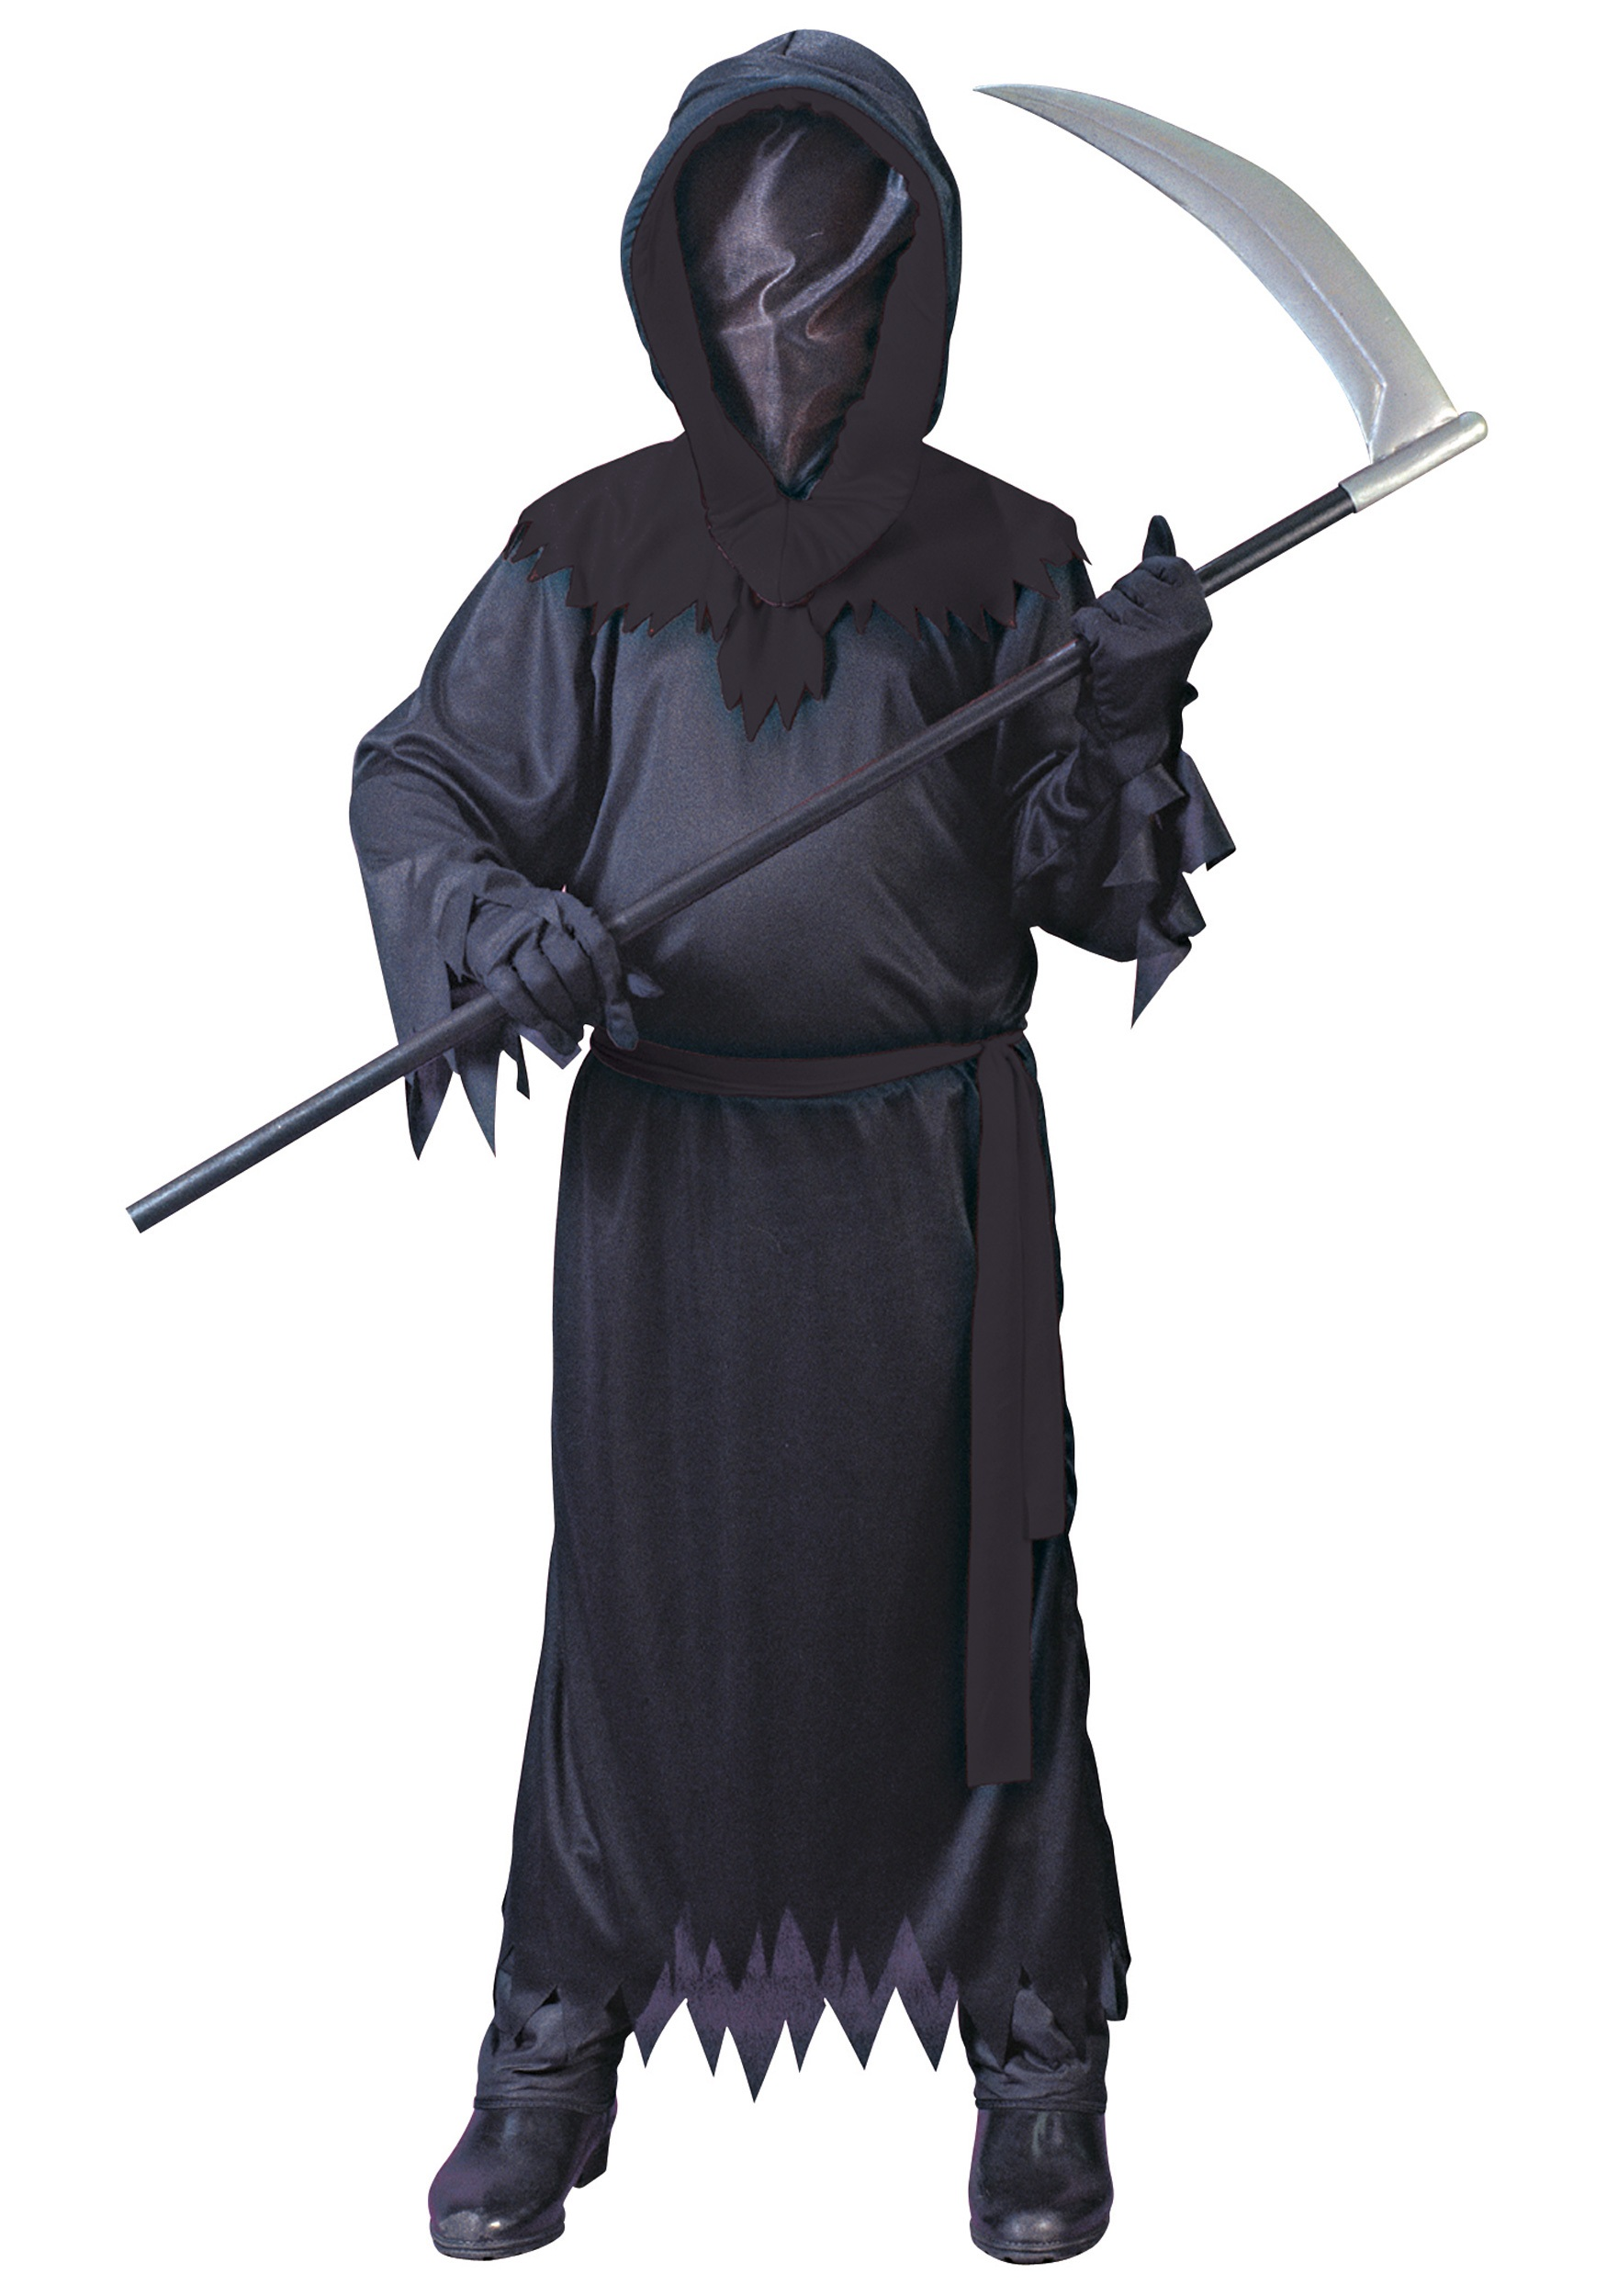 Scary Halloween Costumes For Boys | Child Black Faceless Ghost Costume Scary Grim Reaper Costume